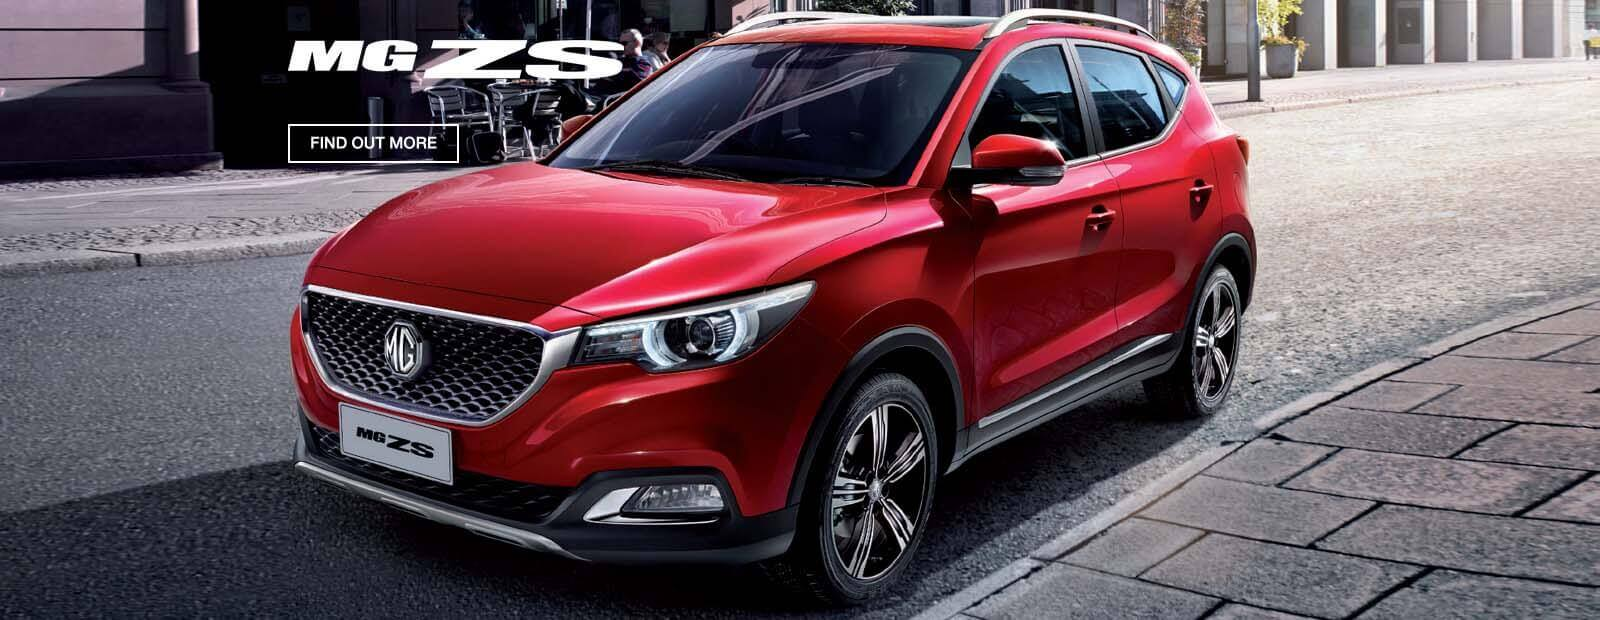 Discover the new MG ZS SUV, the latest model available from ELN MG.